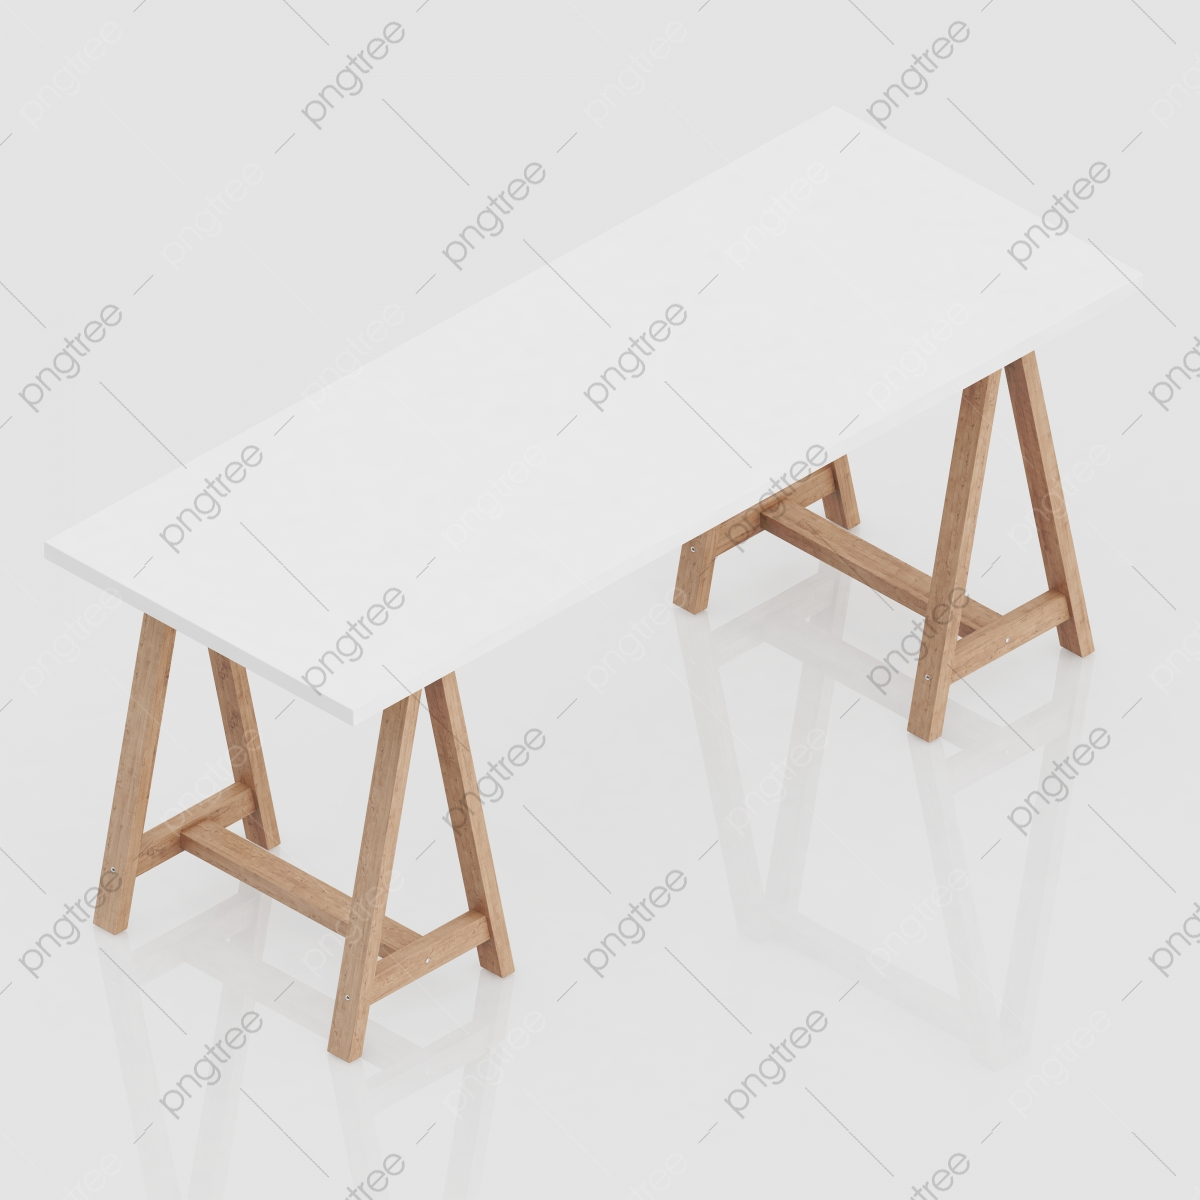 Isometric Office Accessories 3d Renders Backdrop Background